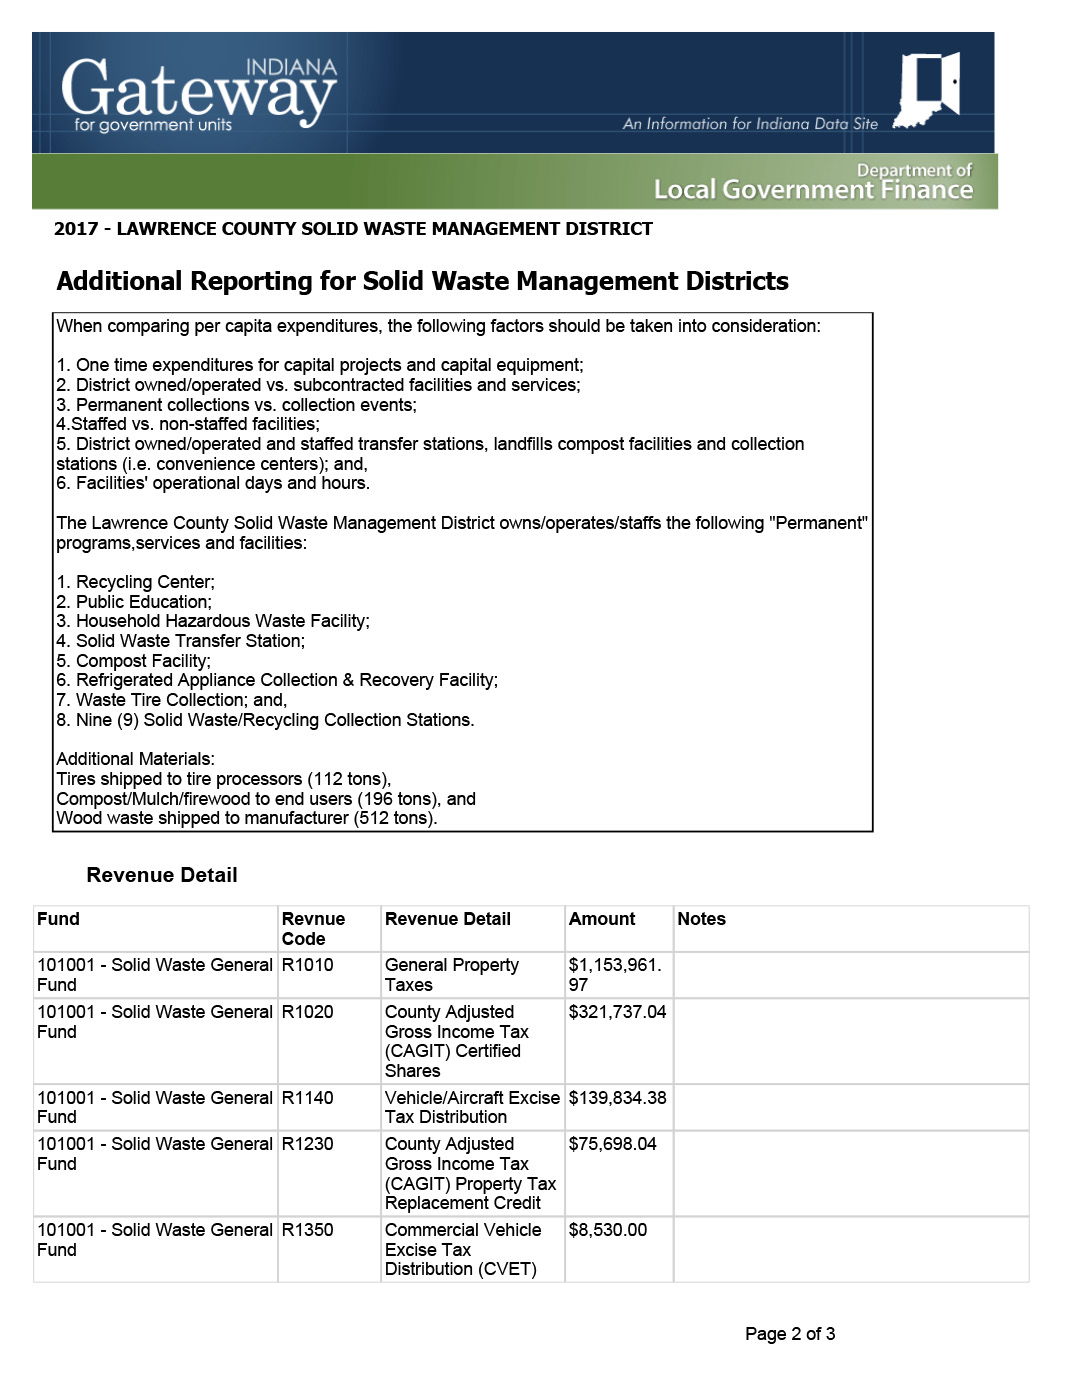 SB131 Report | Lawrence County Solid Waste Management